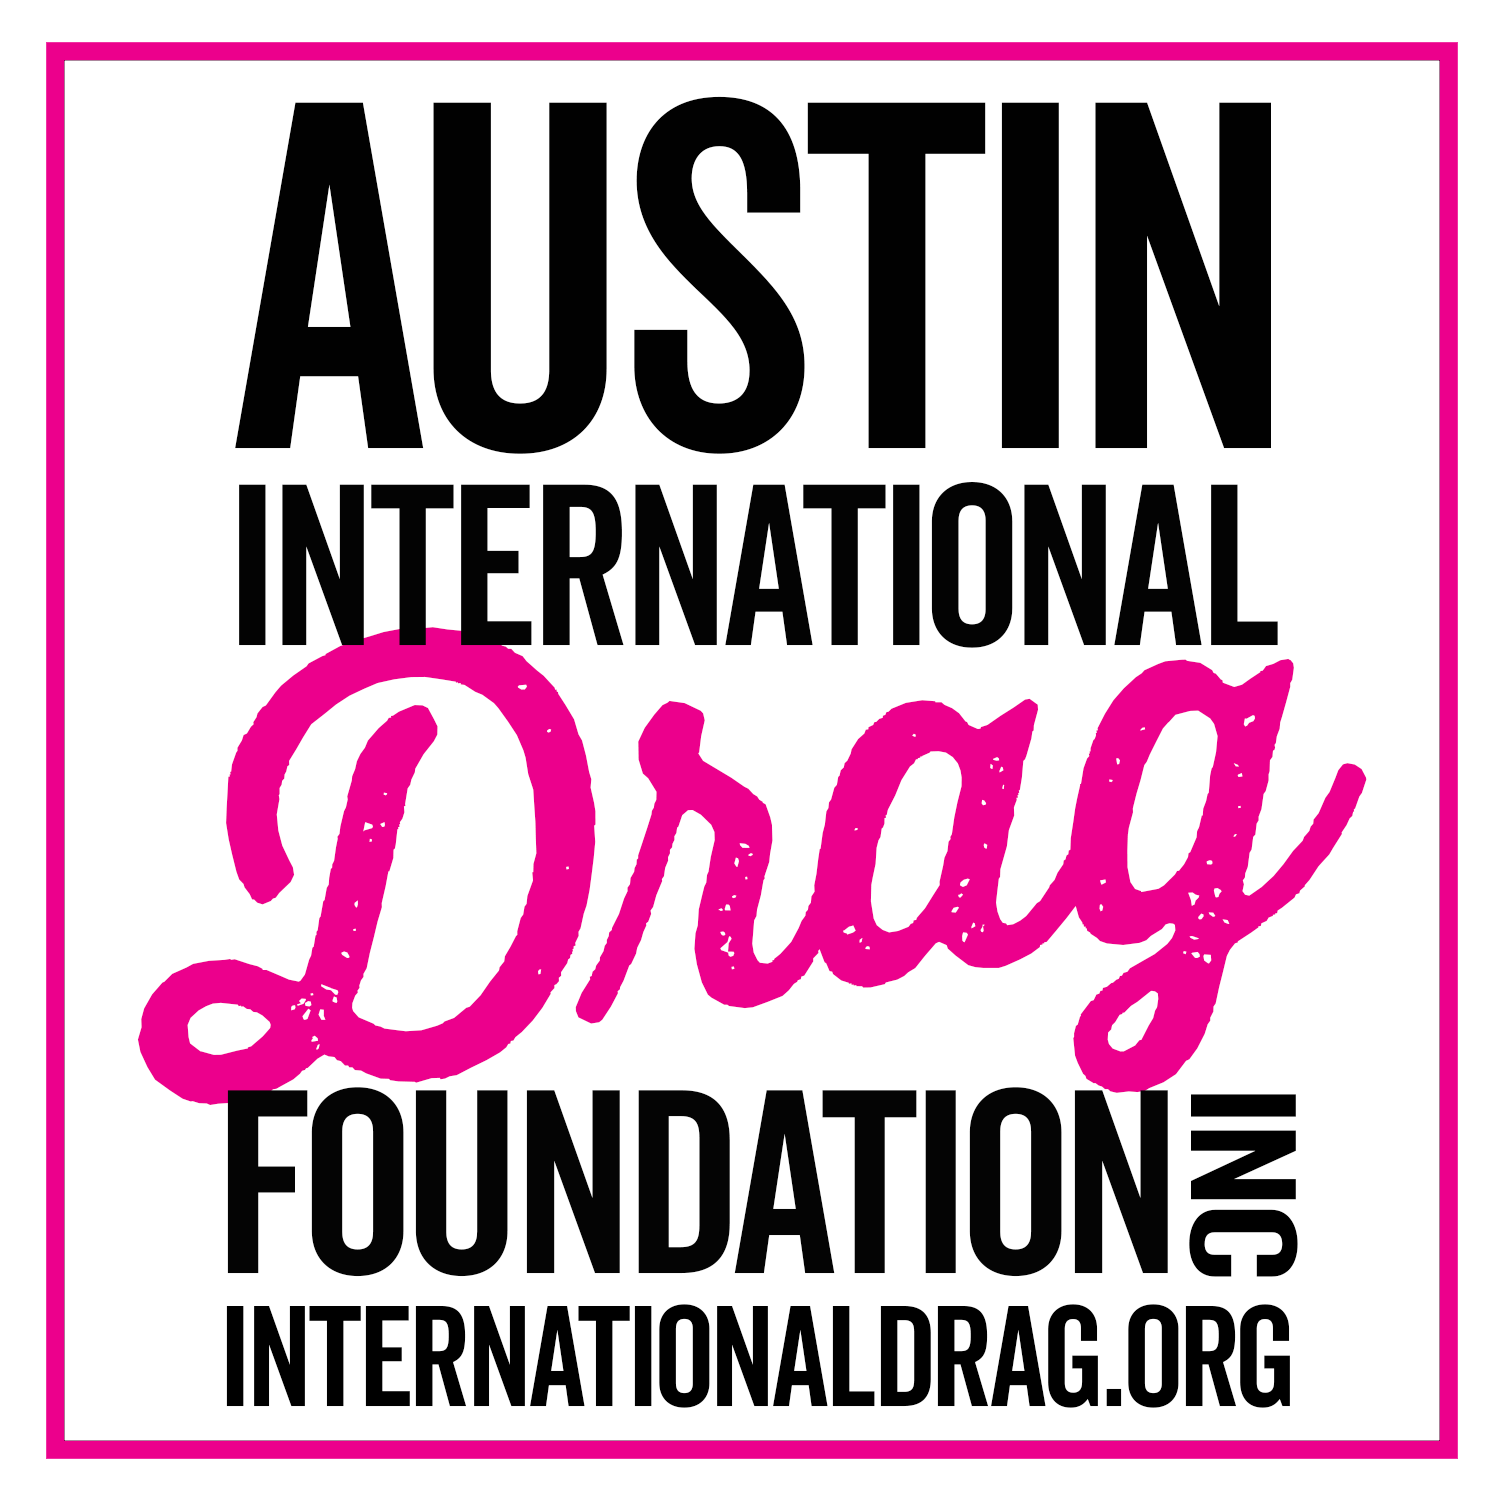 Austin International Drag Foundation Inc.